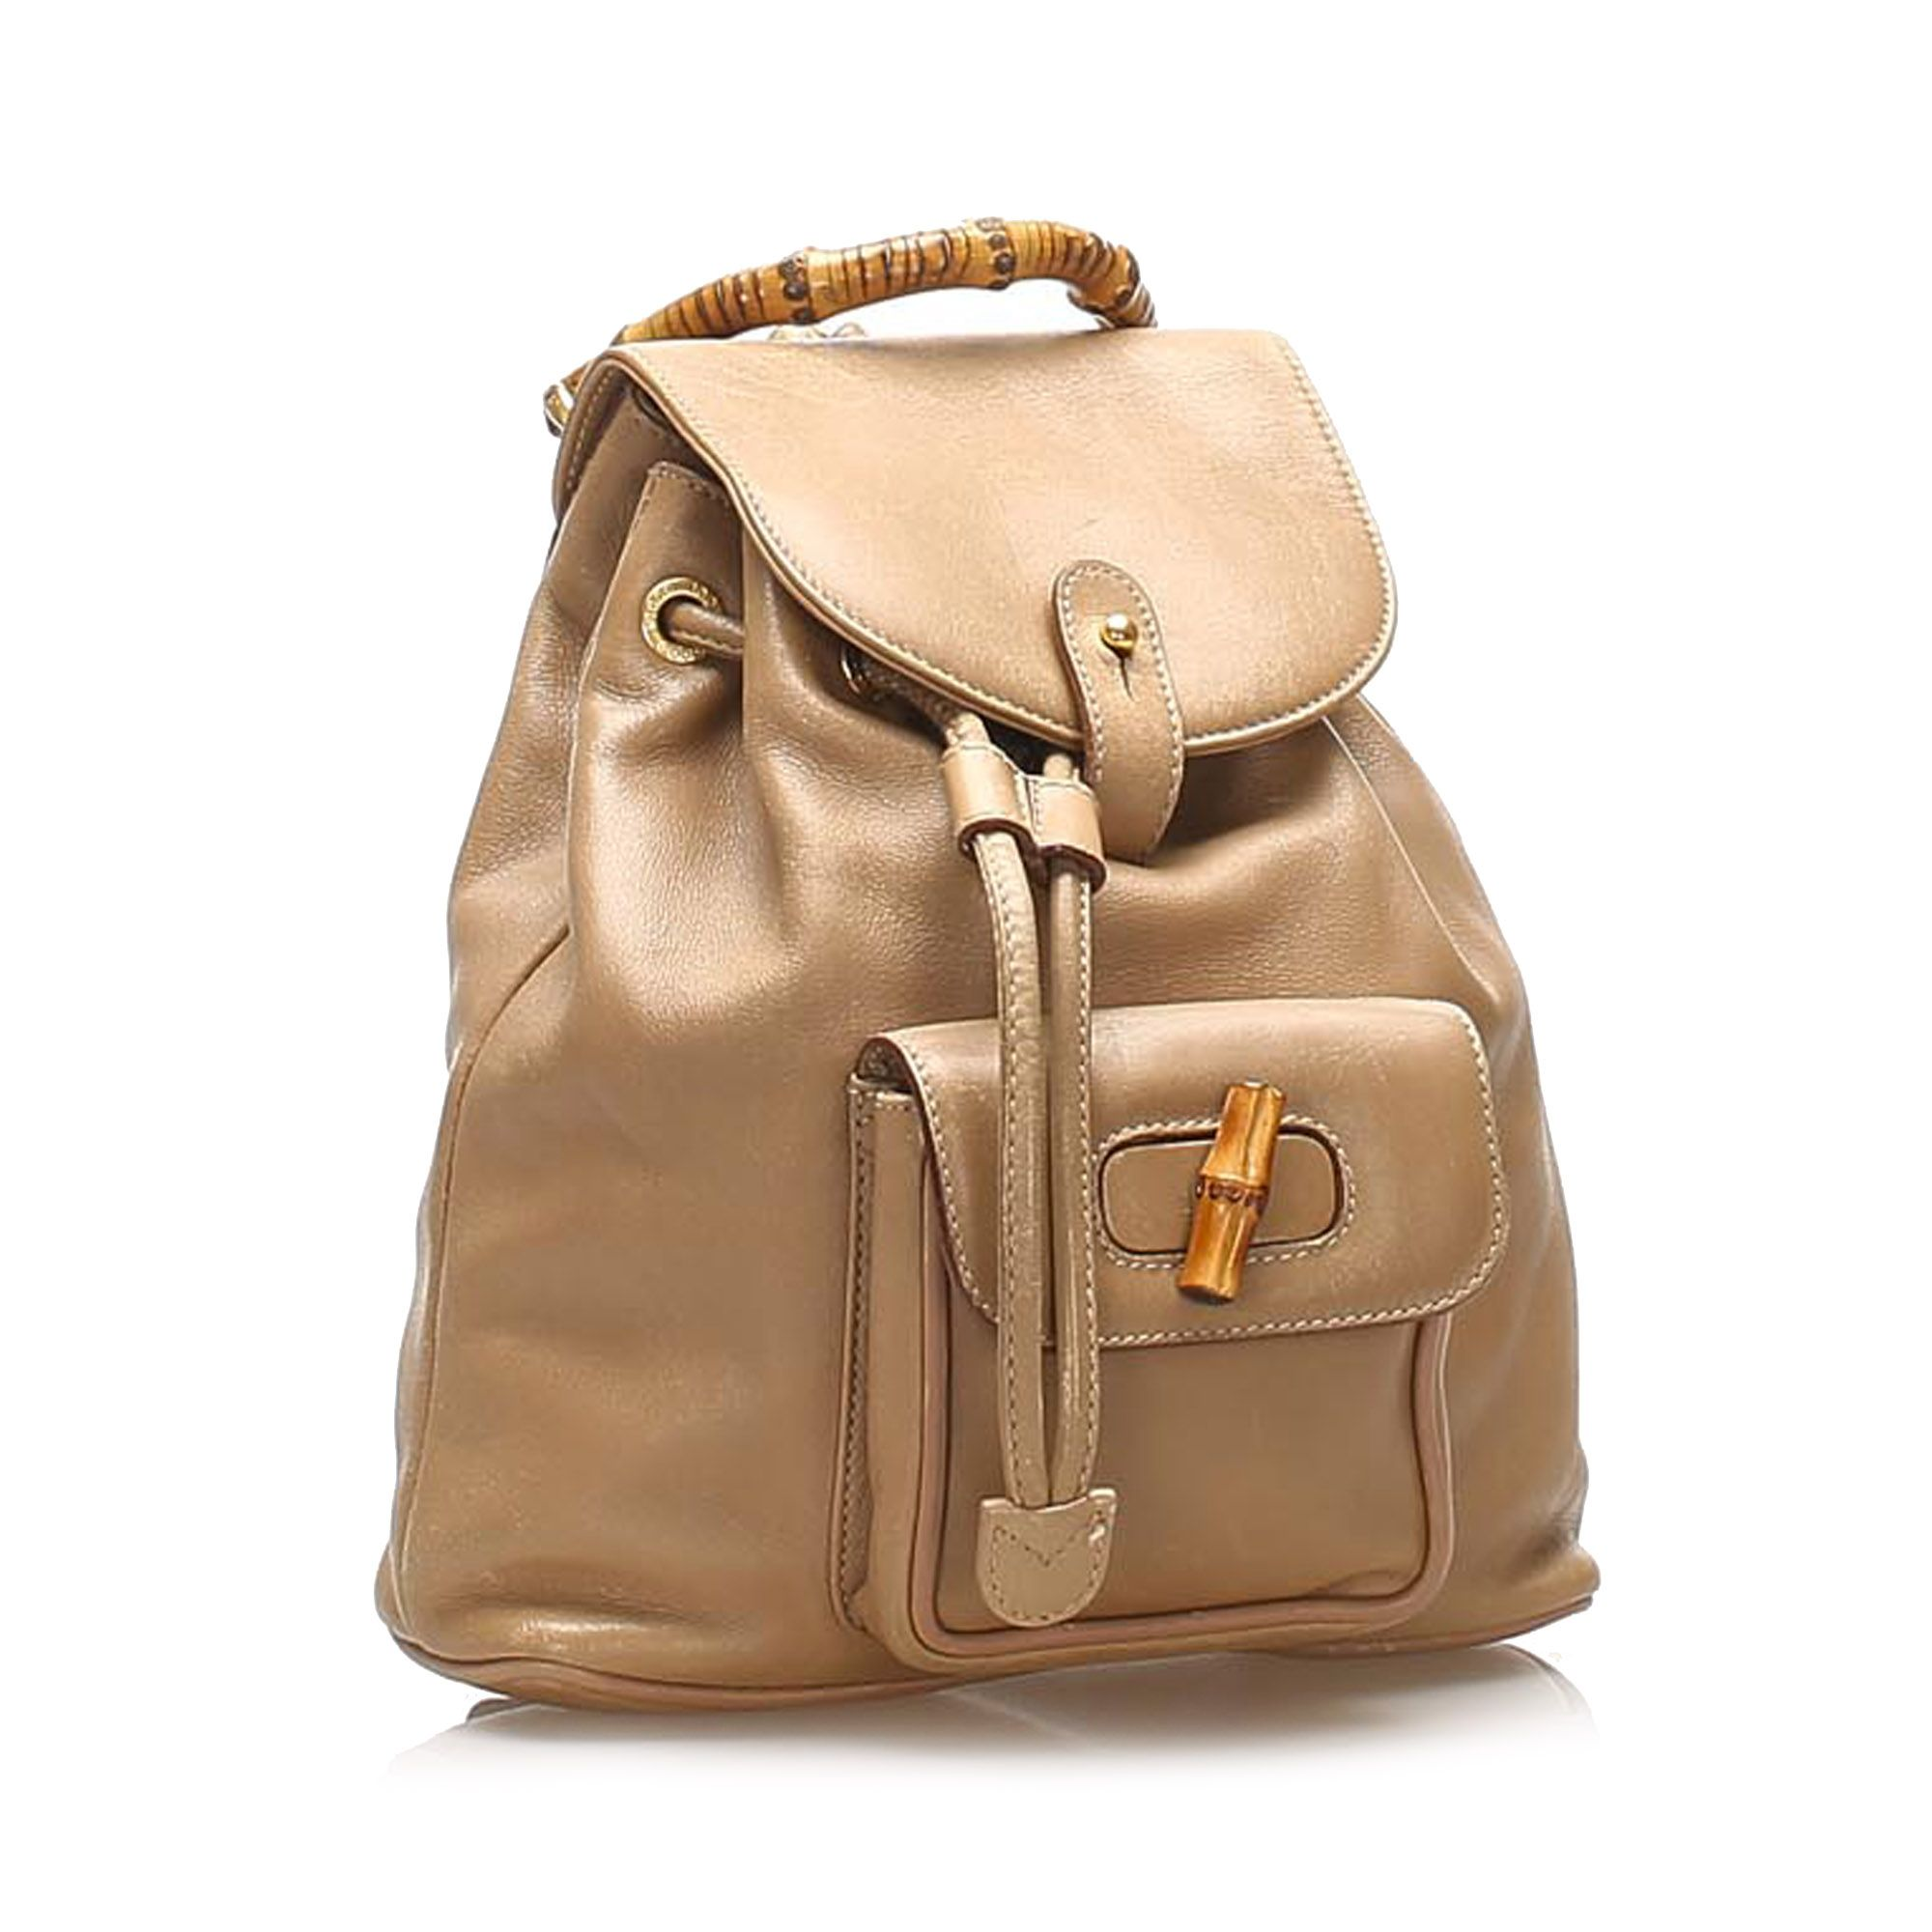 Vintage Gucci Bamboo Drawstring Leather Backpack Brown